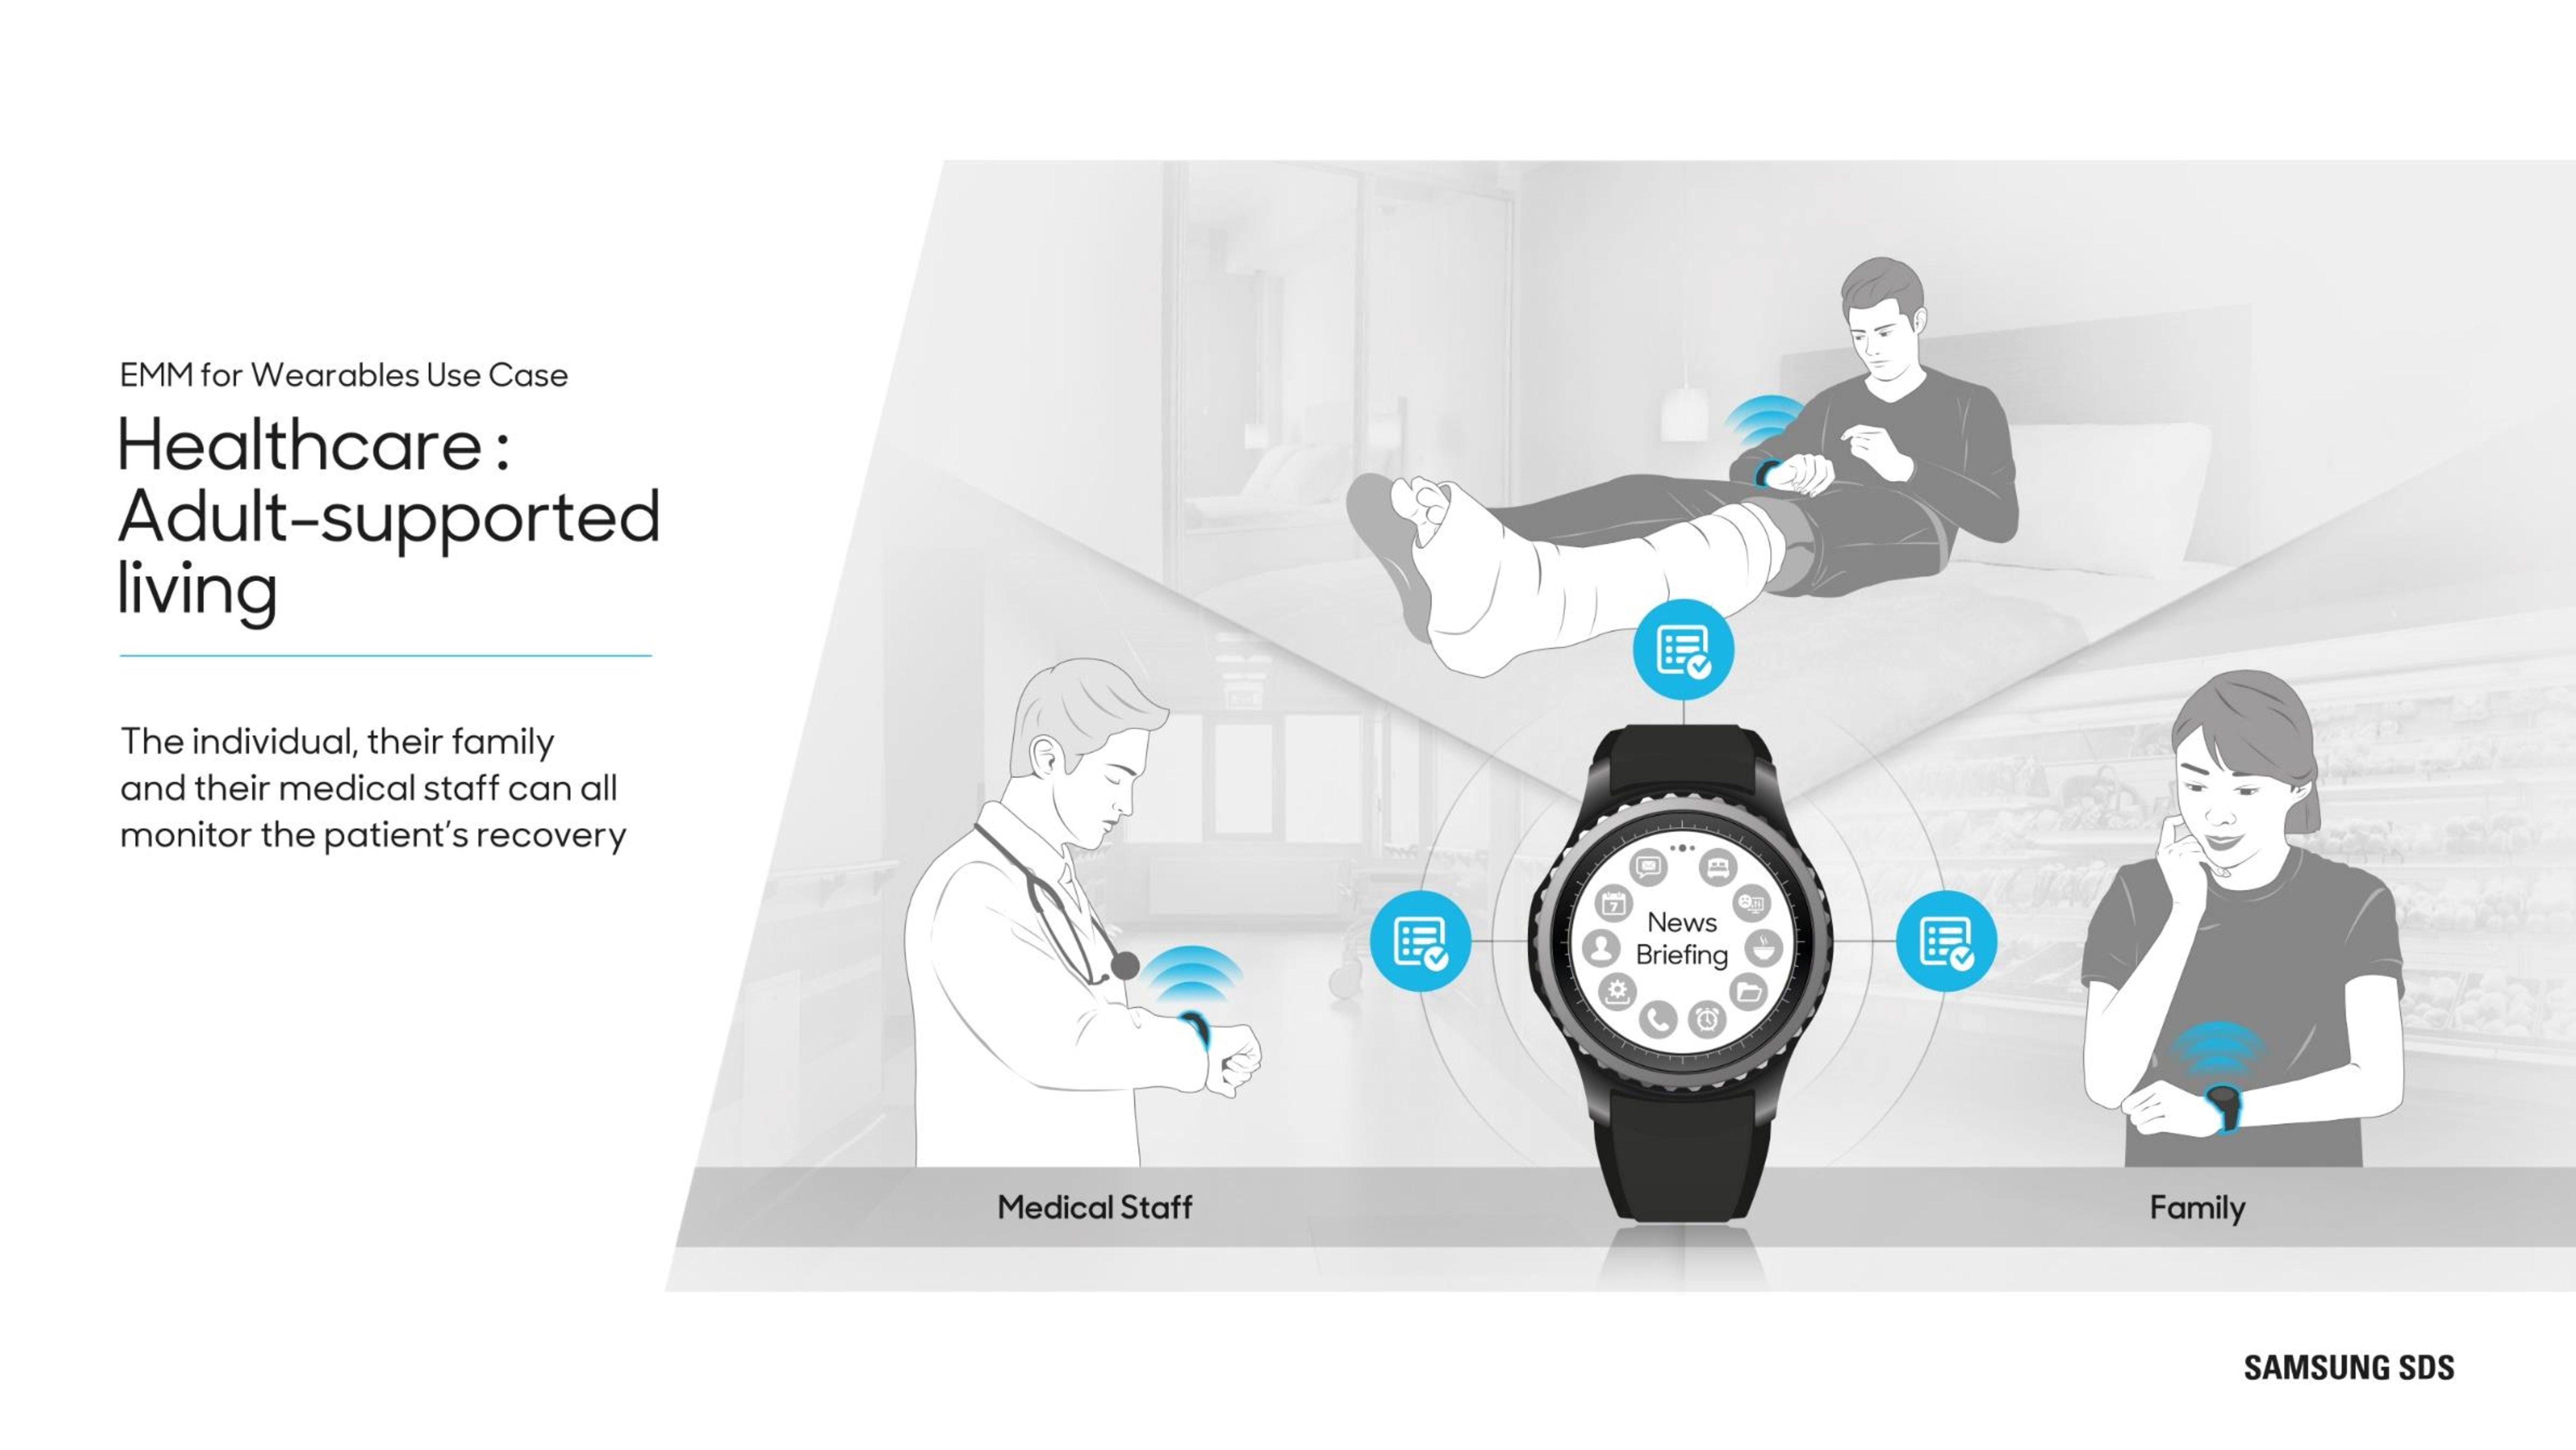 Wearables in Healthcare The individual, their family and their medical staff can all monitor the patient's recovery